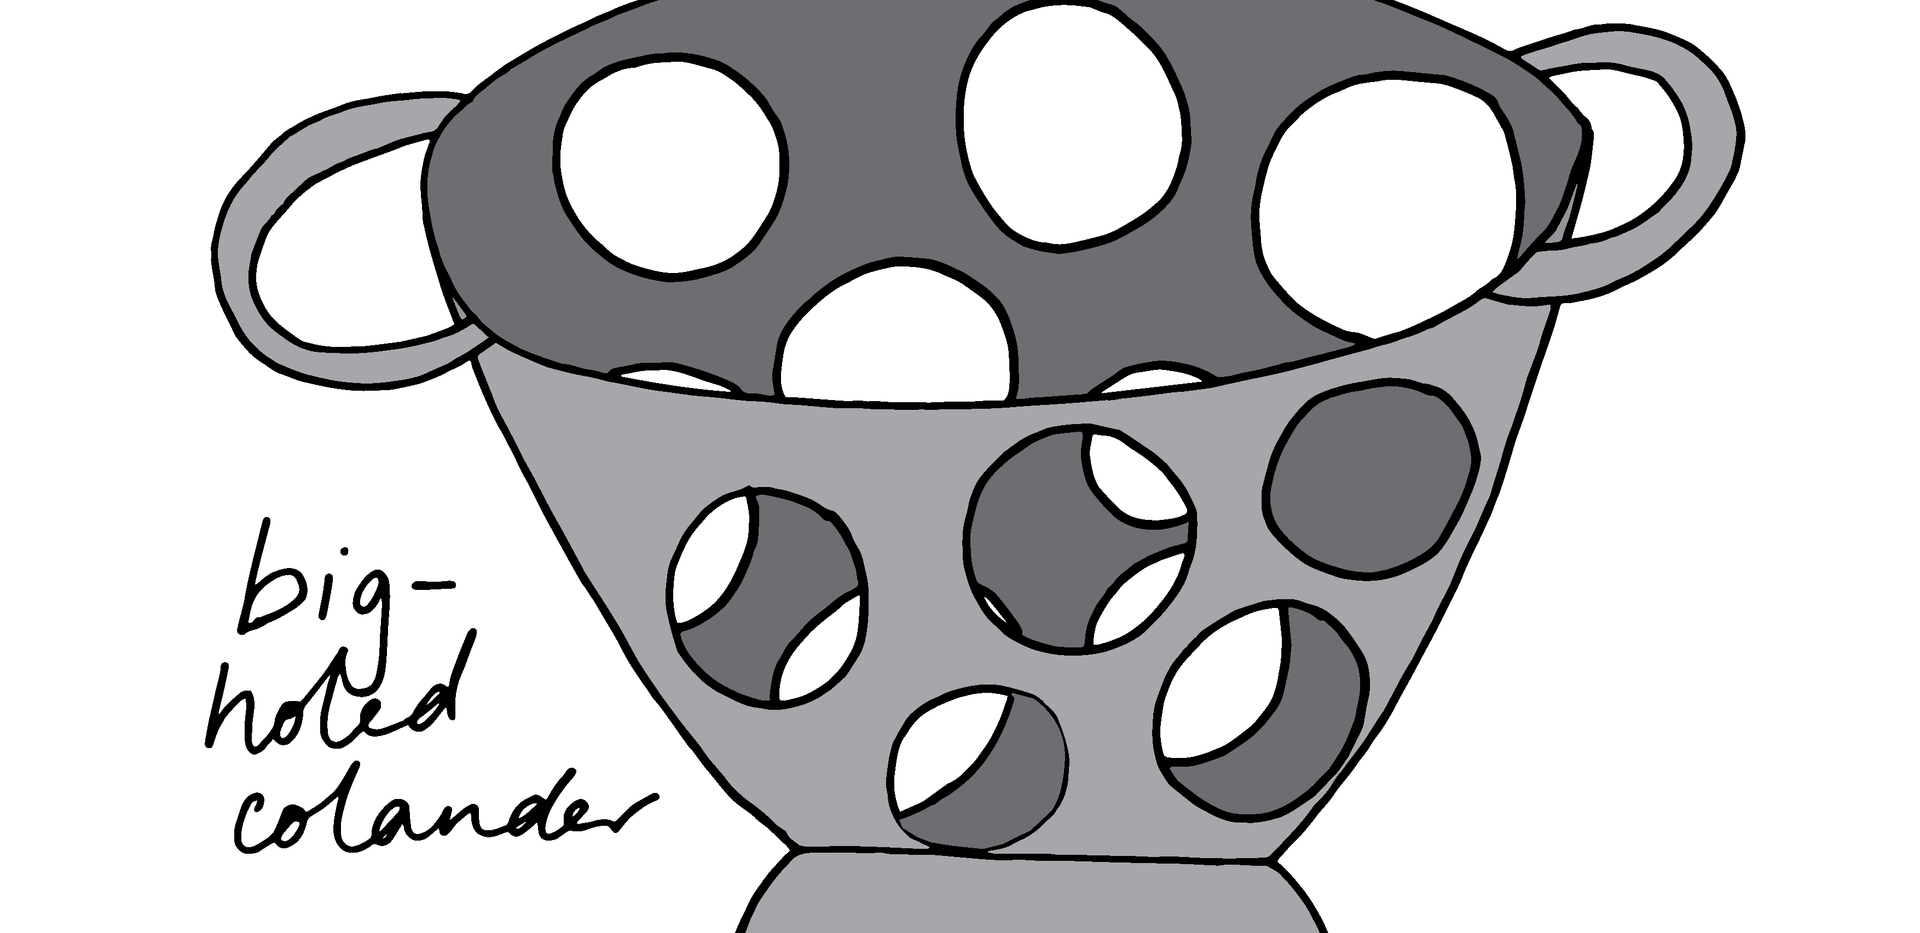 Big-holed colander